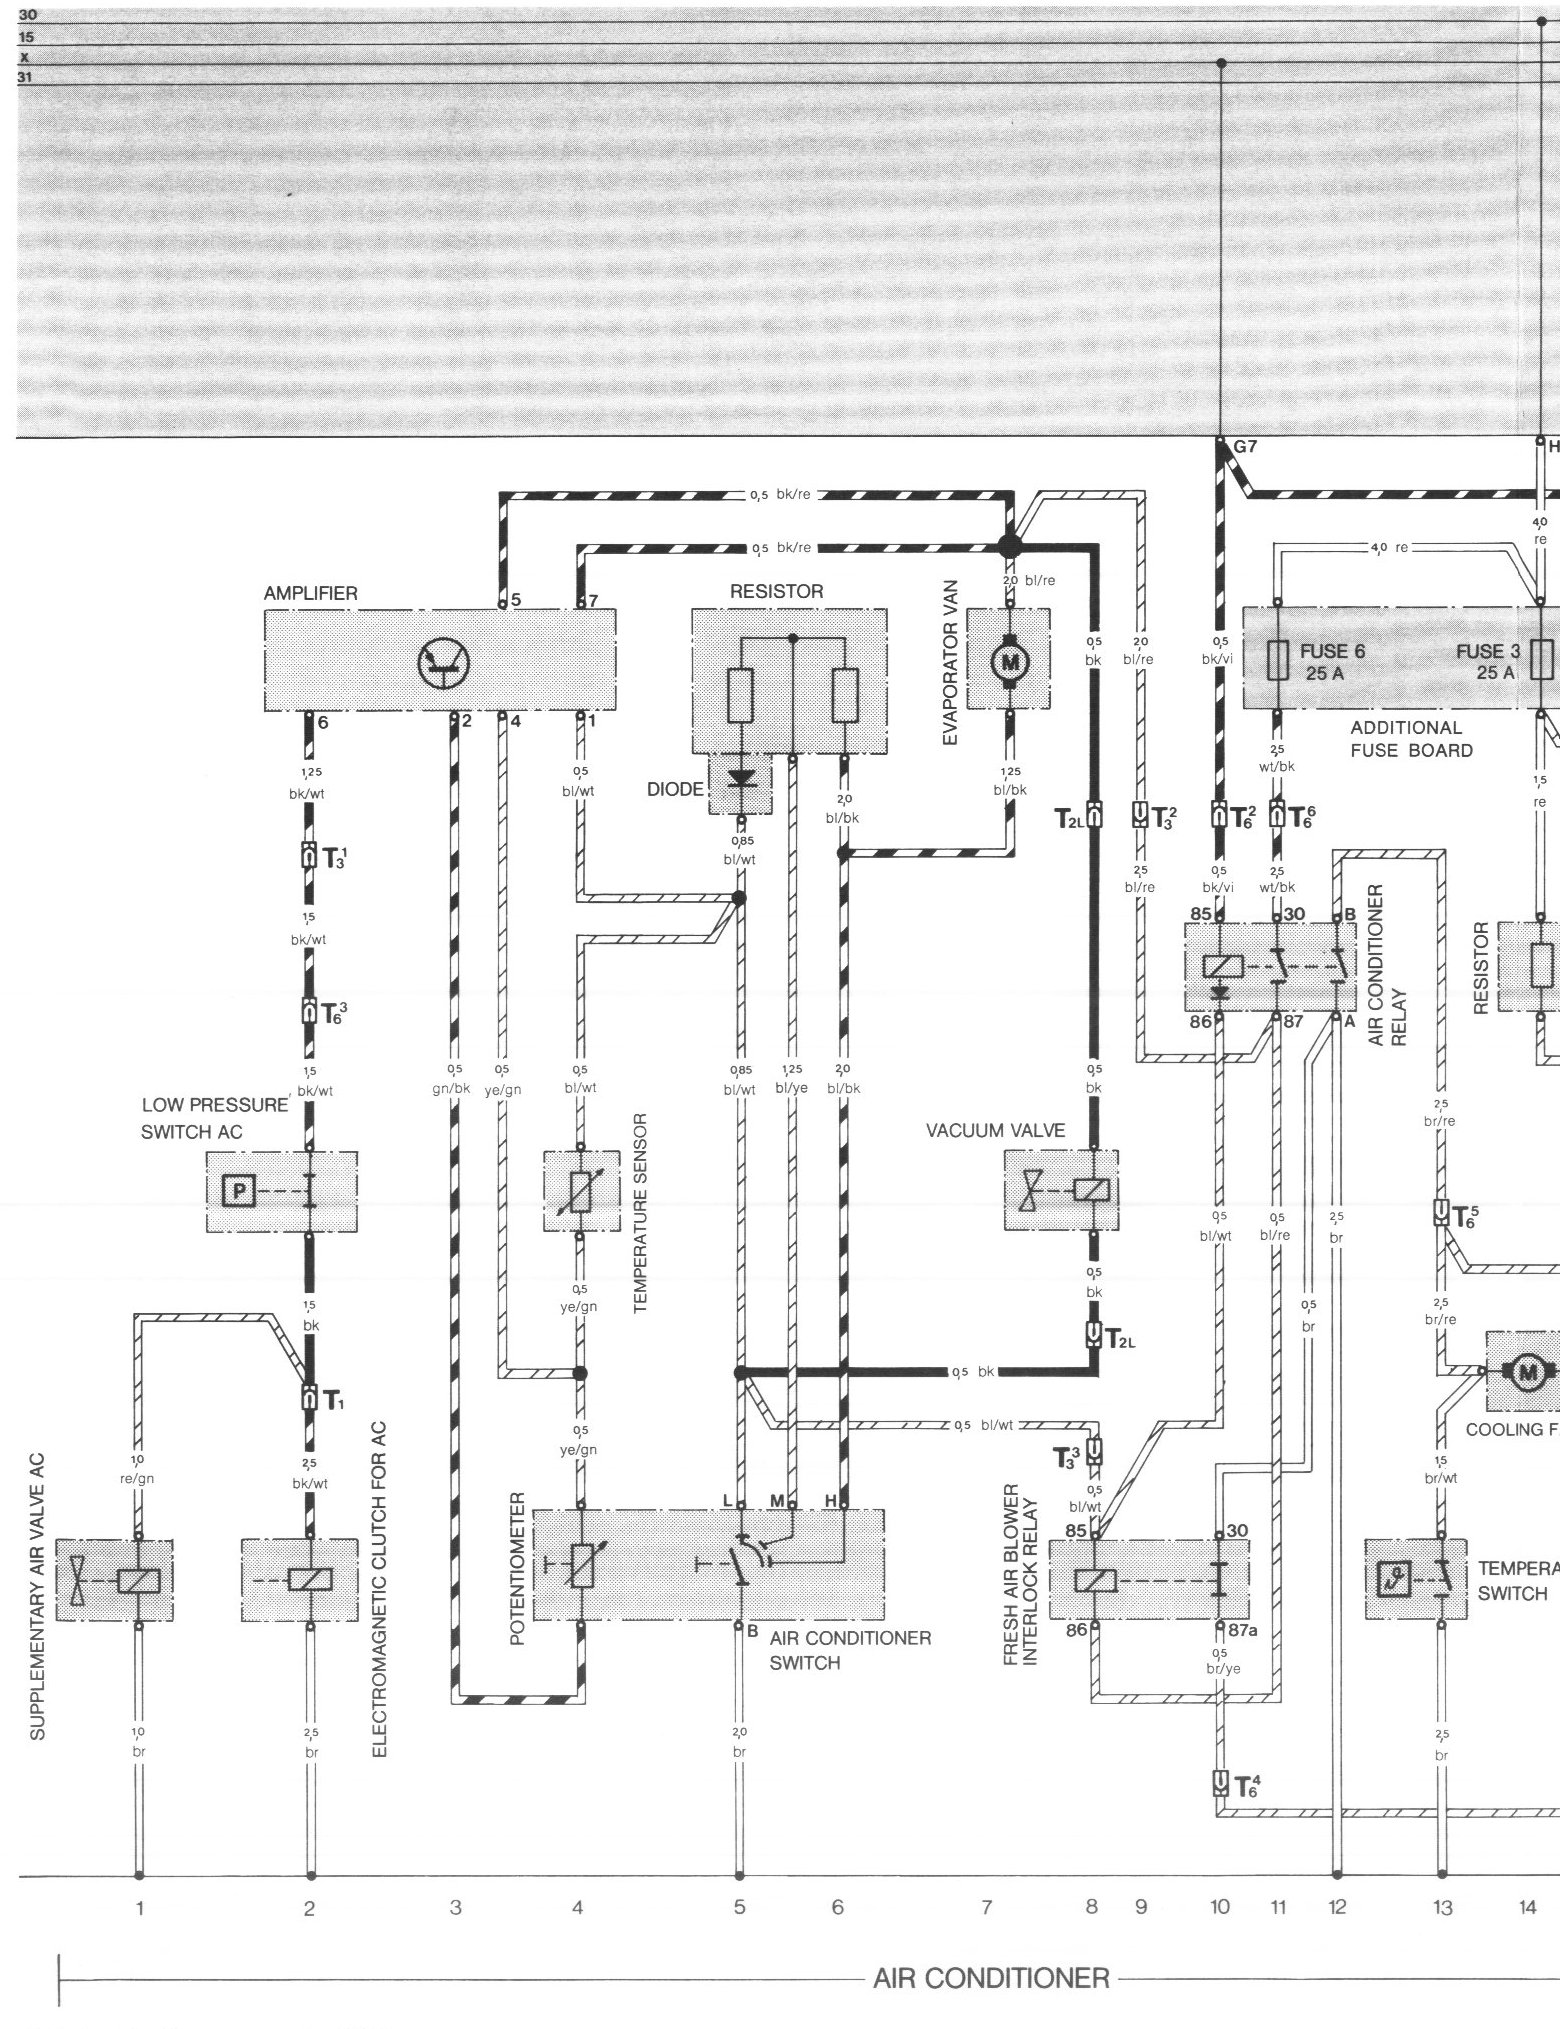 hight resolution of porsche 924 headlight wiring diagram simple wiring schema headlight socket diagram porsche headlight wiring harness diagram